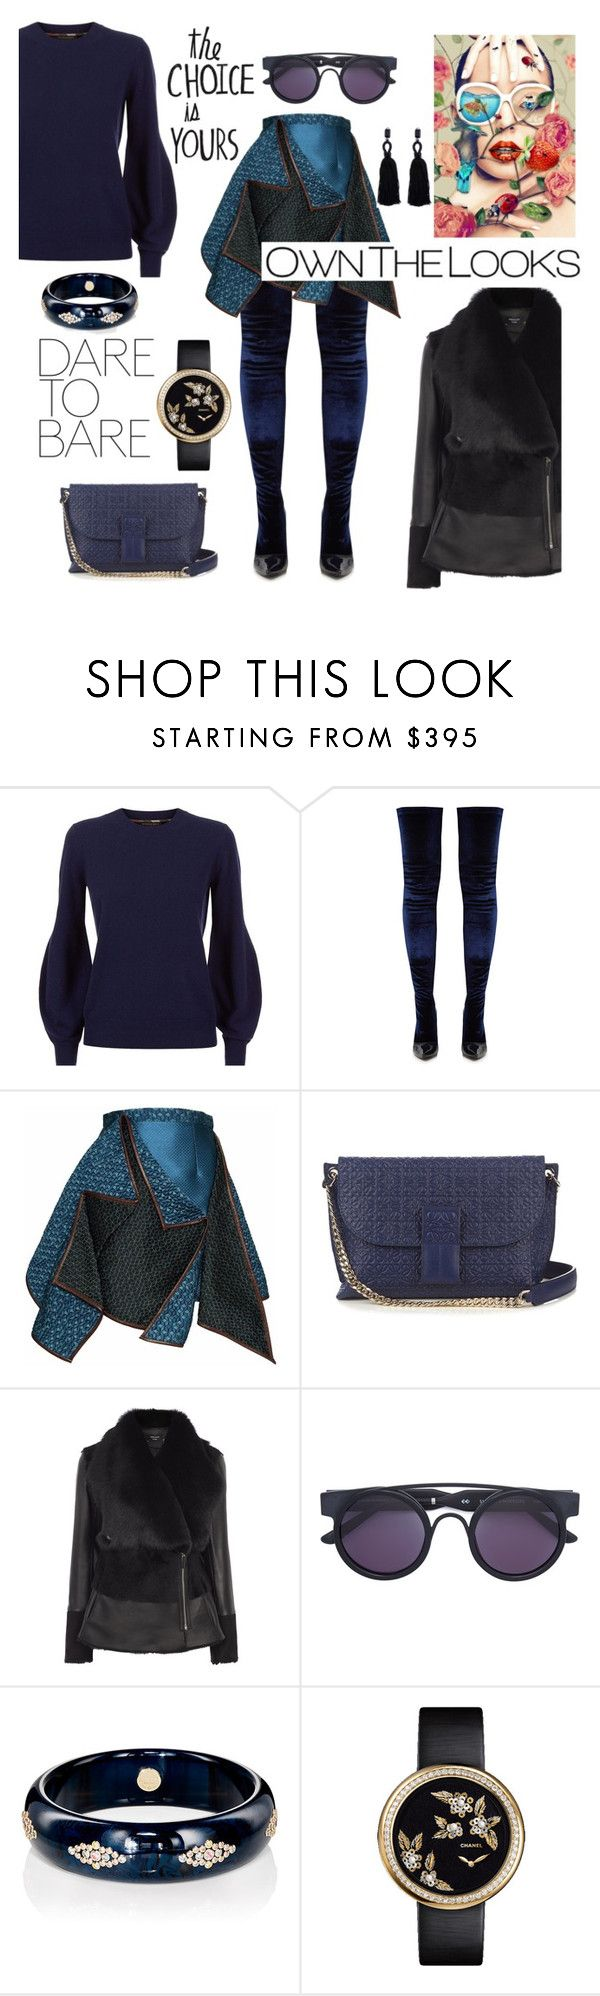 """Own the looks"" by zabead ❤ liked on Polyvore featuring Burberry, Balenciaga, Gyunel, Loewe, Monreal, Smoke x Mirrors, Mark Davis, Chanel and Oscar de la Renta"